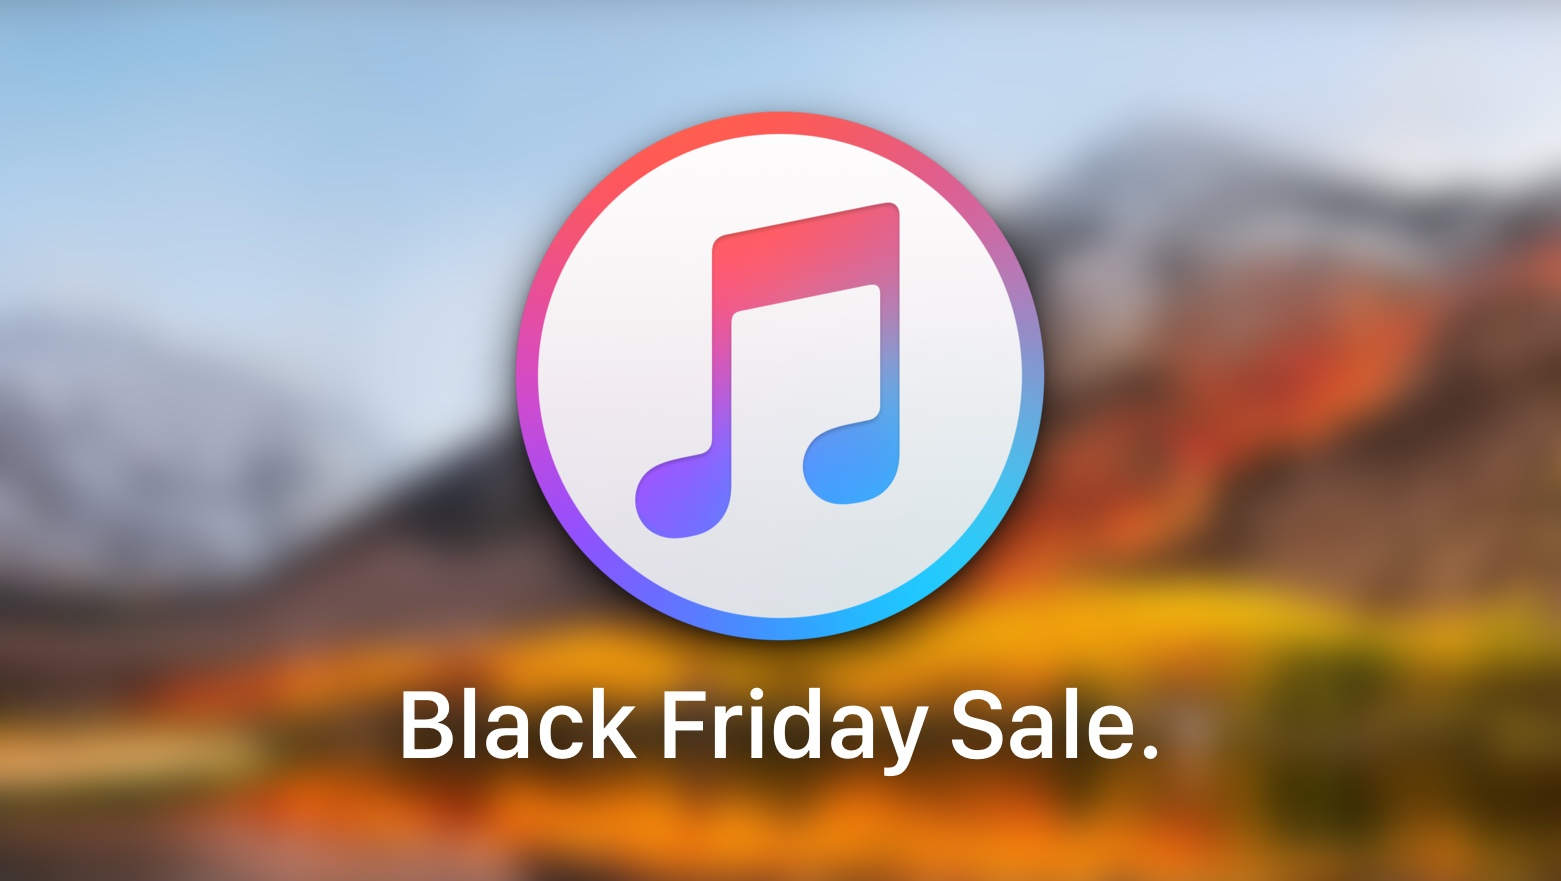 Apple S Black Friday 4 99 Movie Sale Is Now Live On Itunes Direct Links